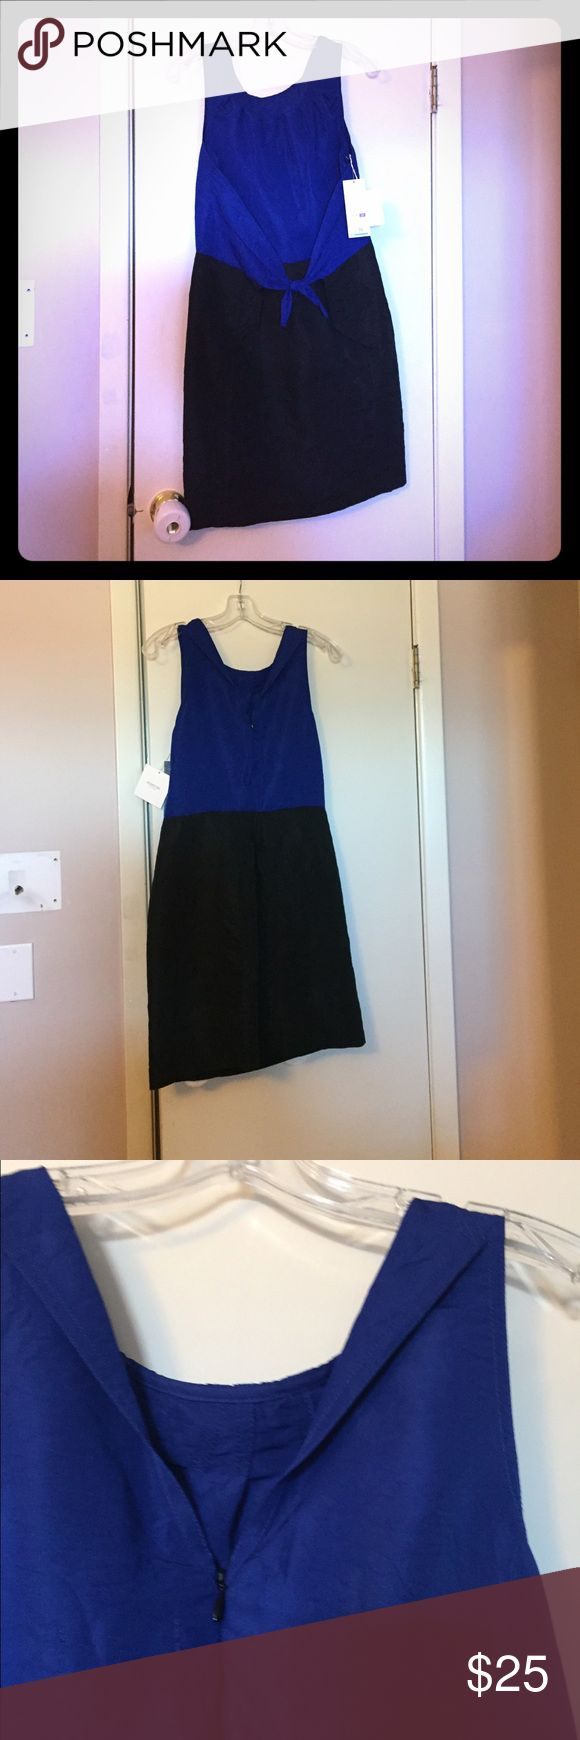 Richard Chain for Target dress This dress is a Vibrant blue and black and made of a dressy feel fabric which contributes to the overall elegant look. richard chai for target Dresses Midi